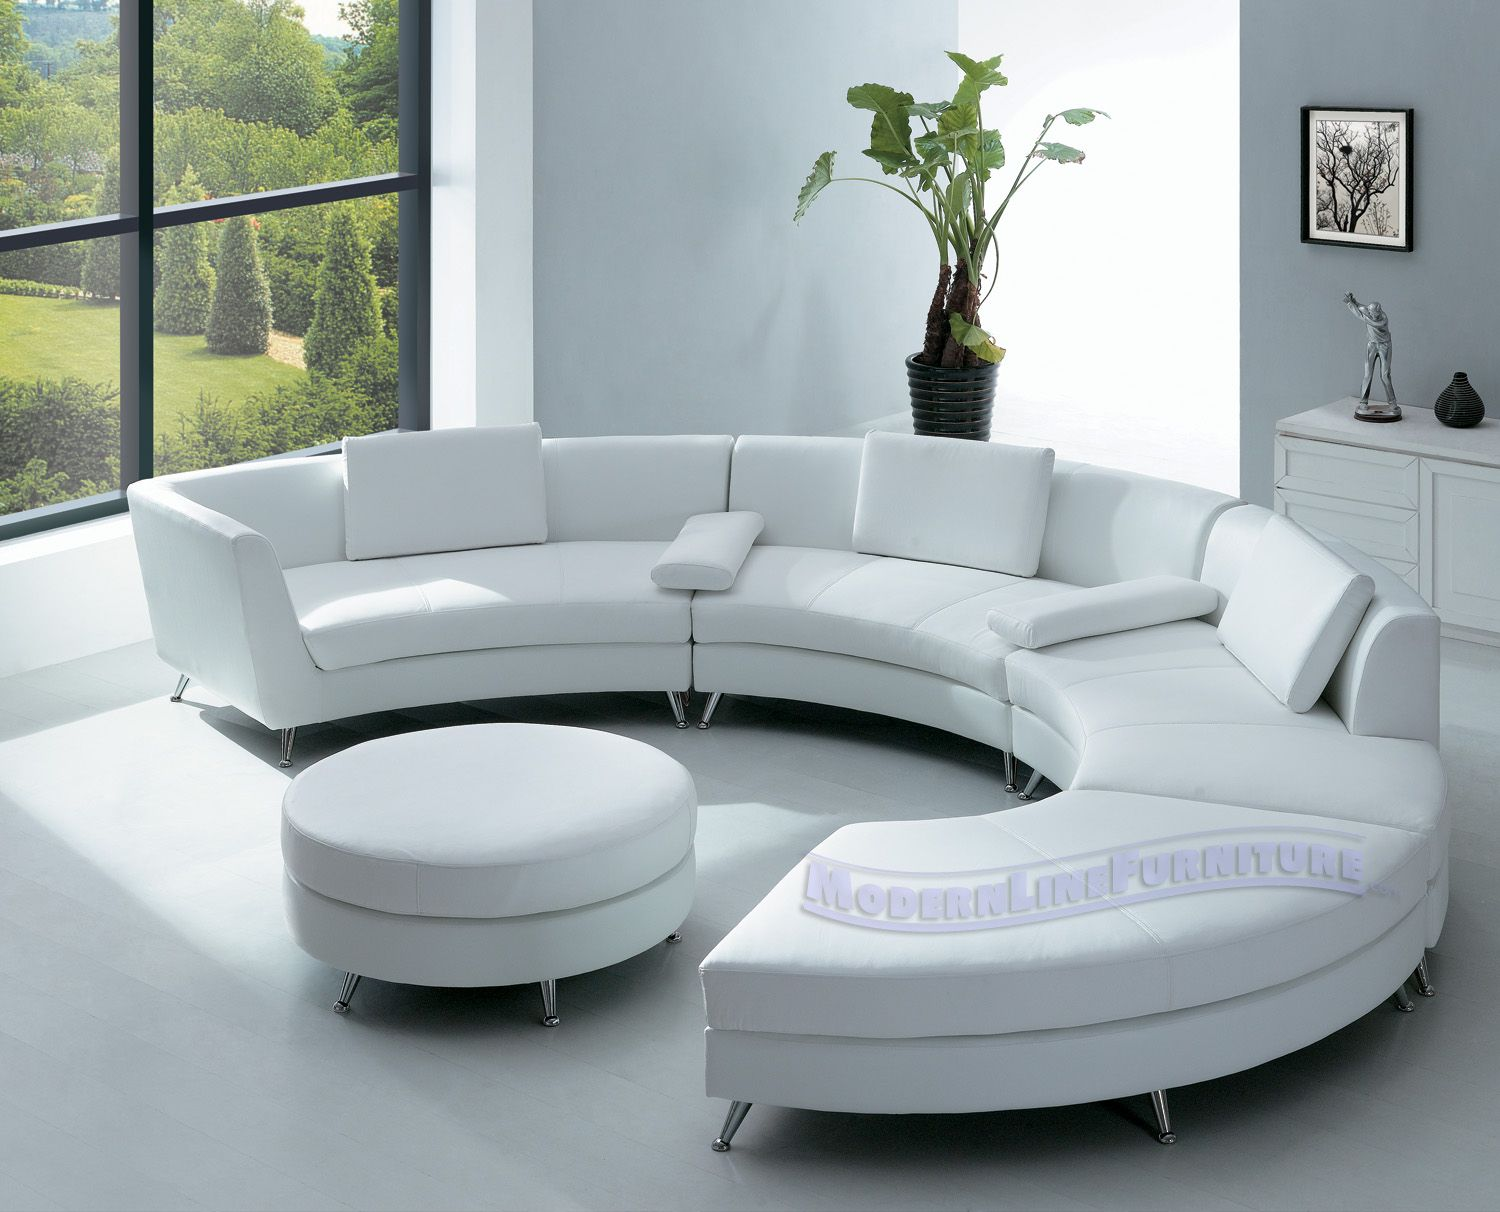 best 20 round sofa ideas on pinterest contemporary sofa white sofa furniture for small living room home design modern living room furniture round sofa best photo 01